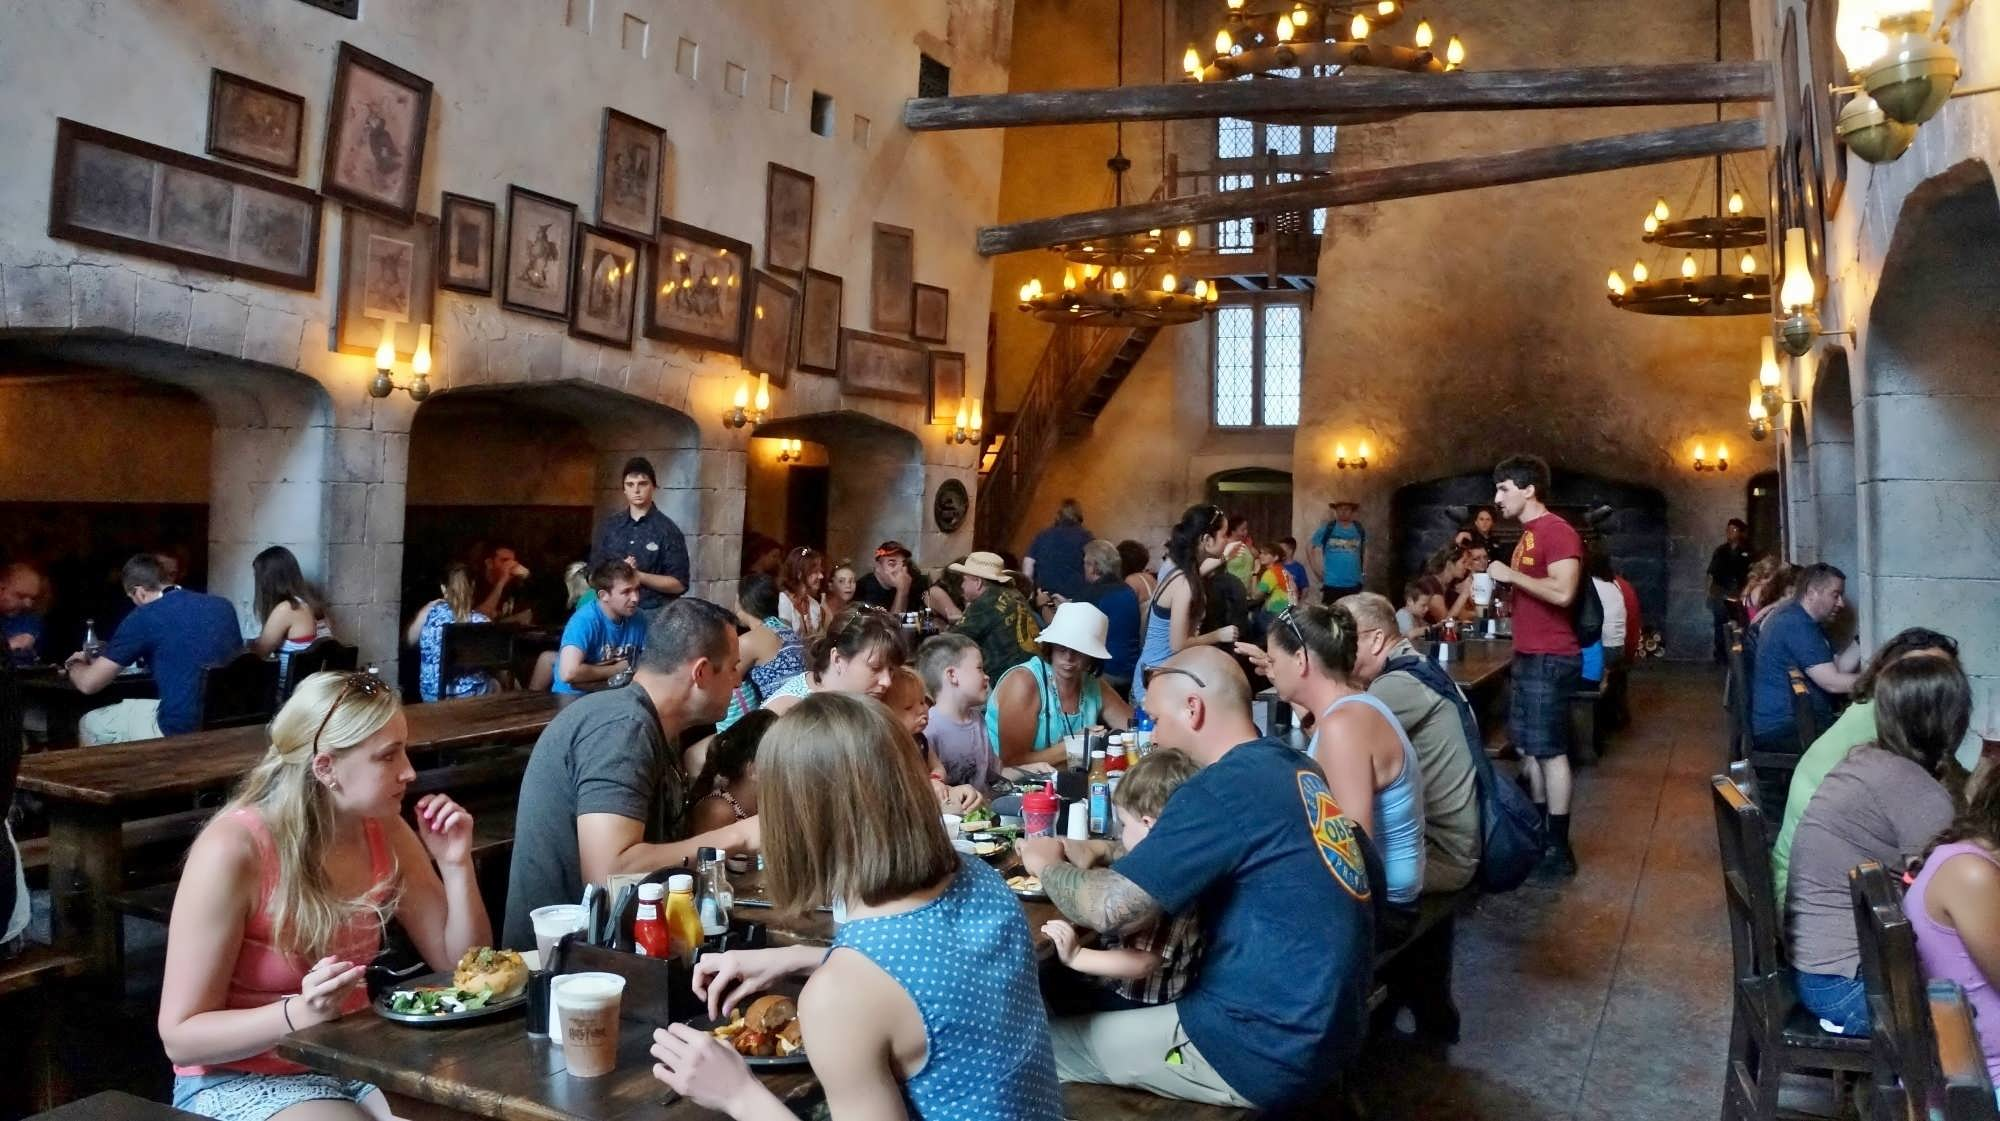 The Leaky Cauldron at the Wizarding World of Harry Potter – Diagon Alley